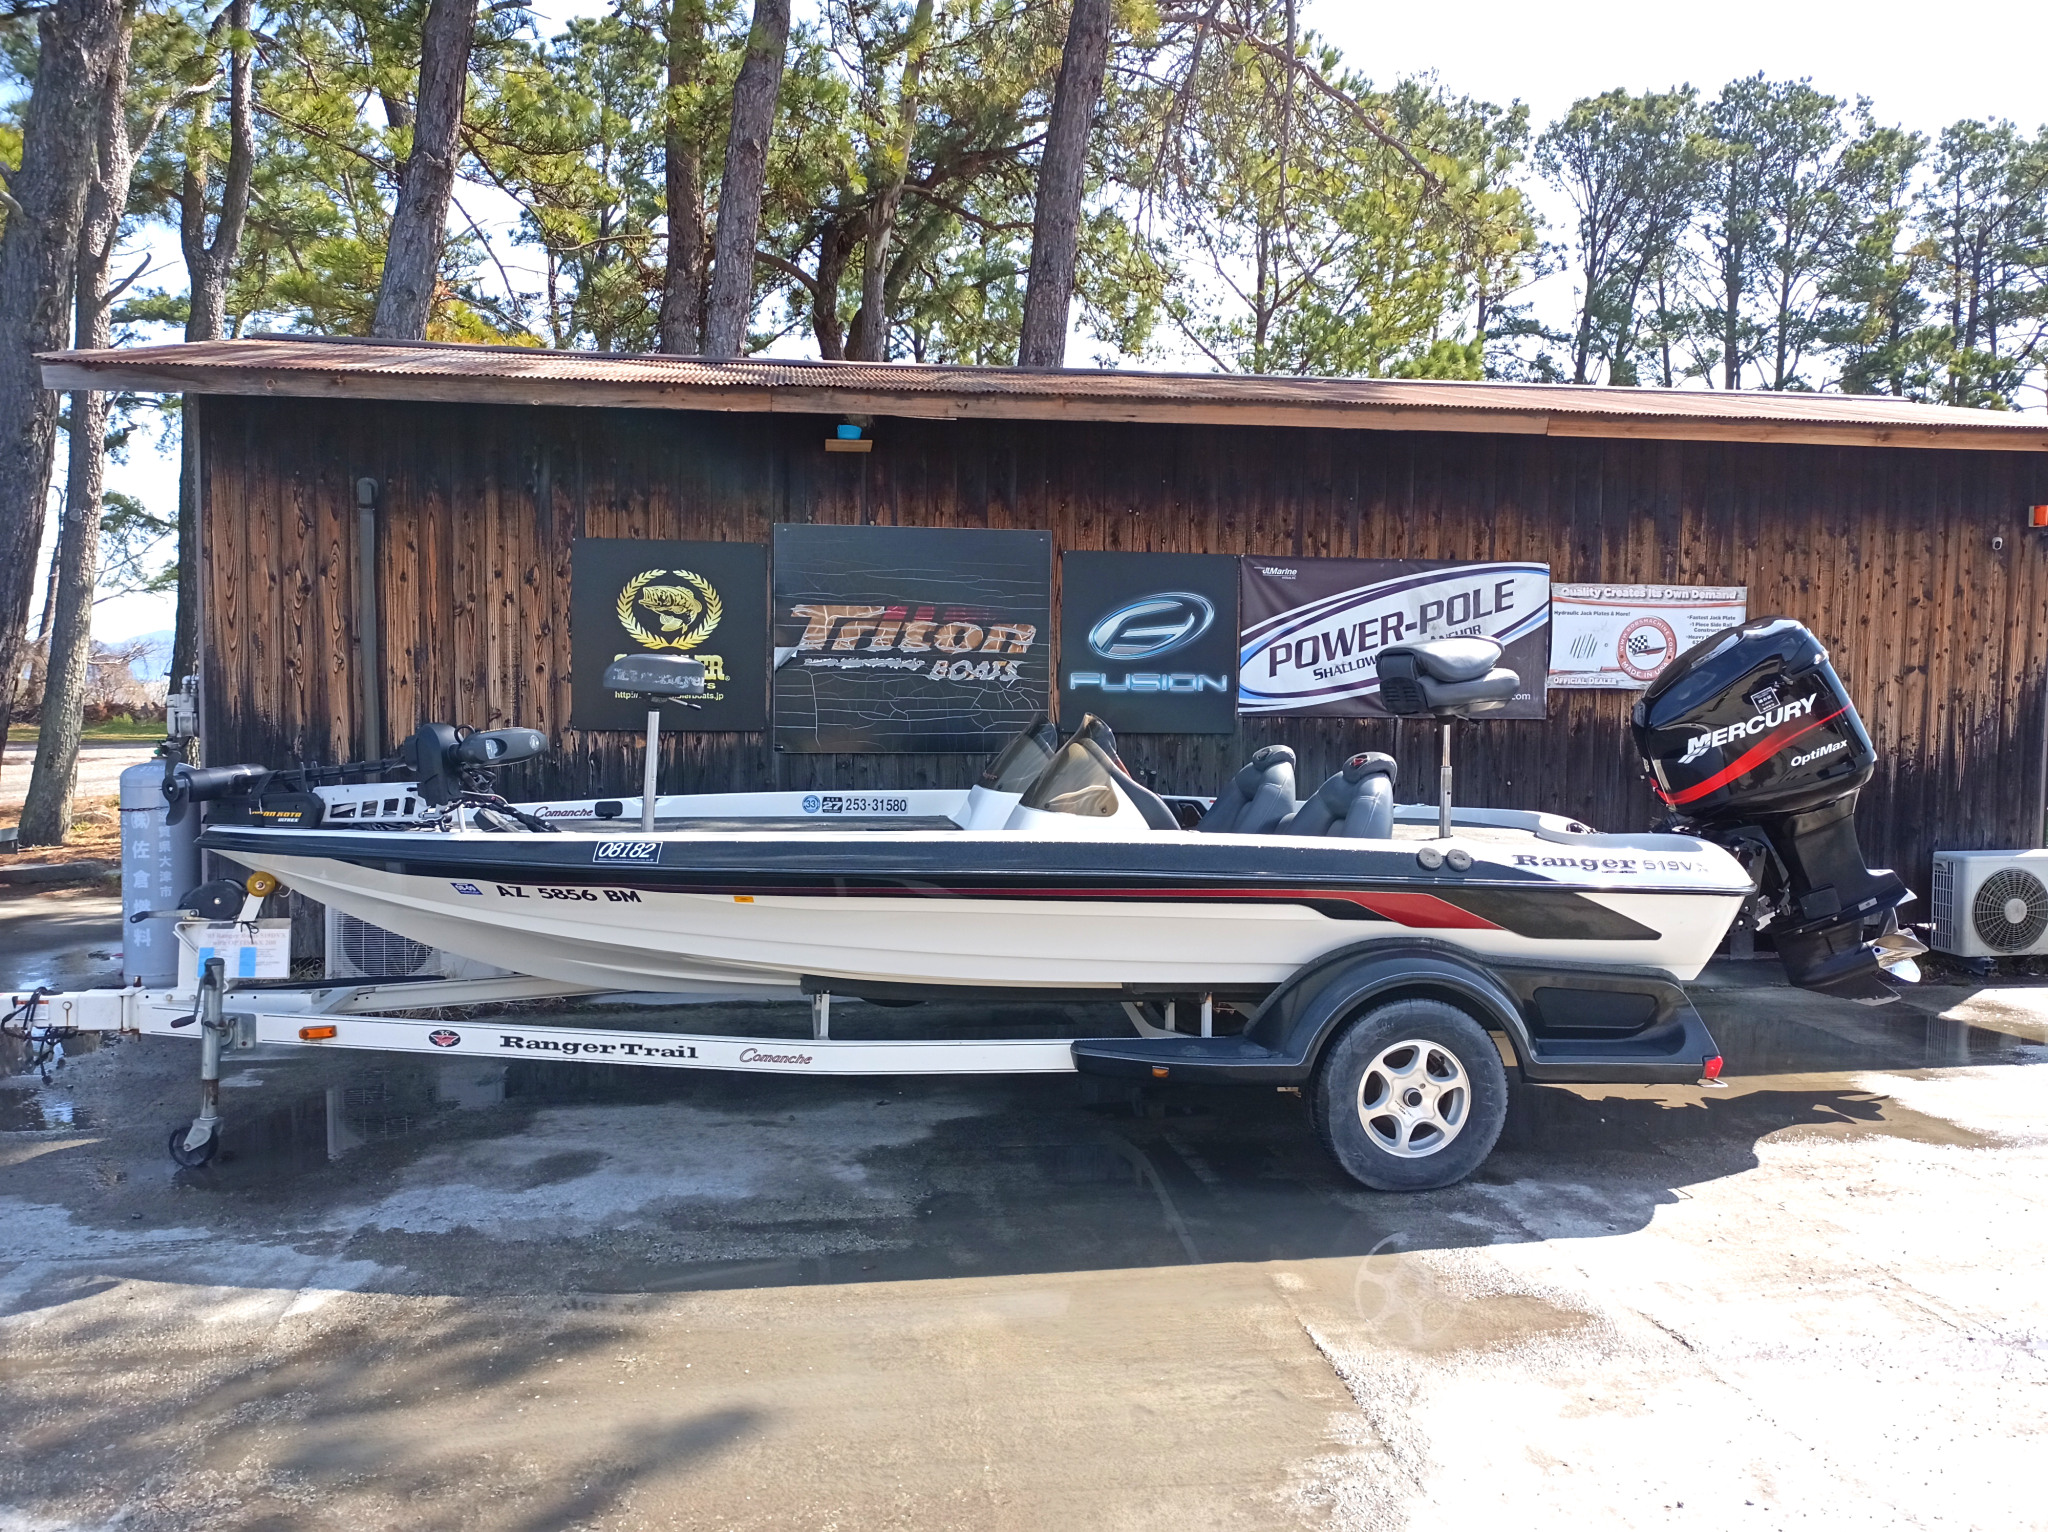 PRICE DOWN 年末まで保管料無料 '03 Ranger Boats 519DVX with OPTIMAX 200